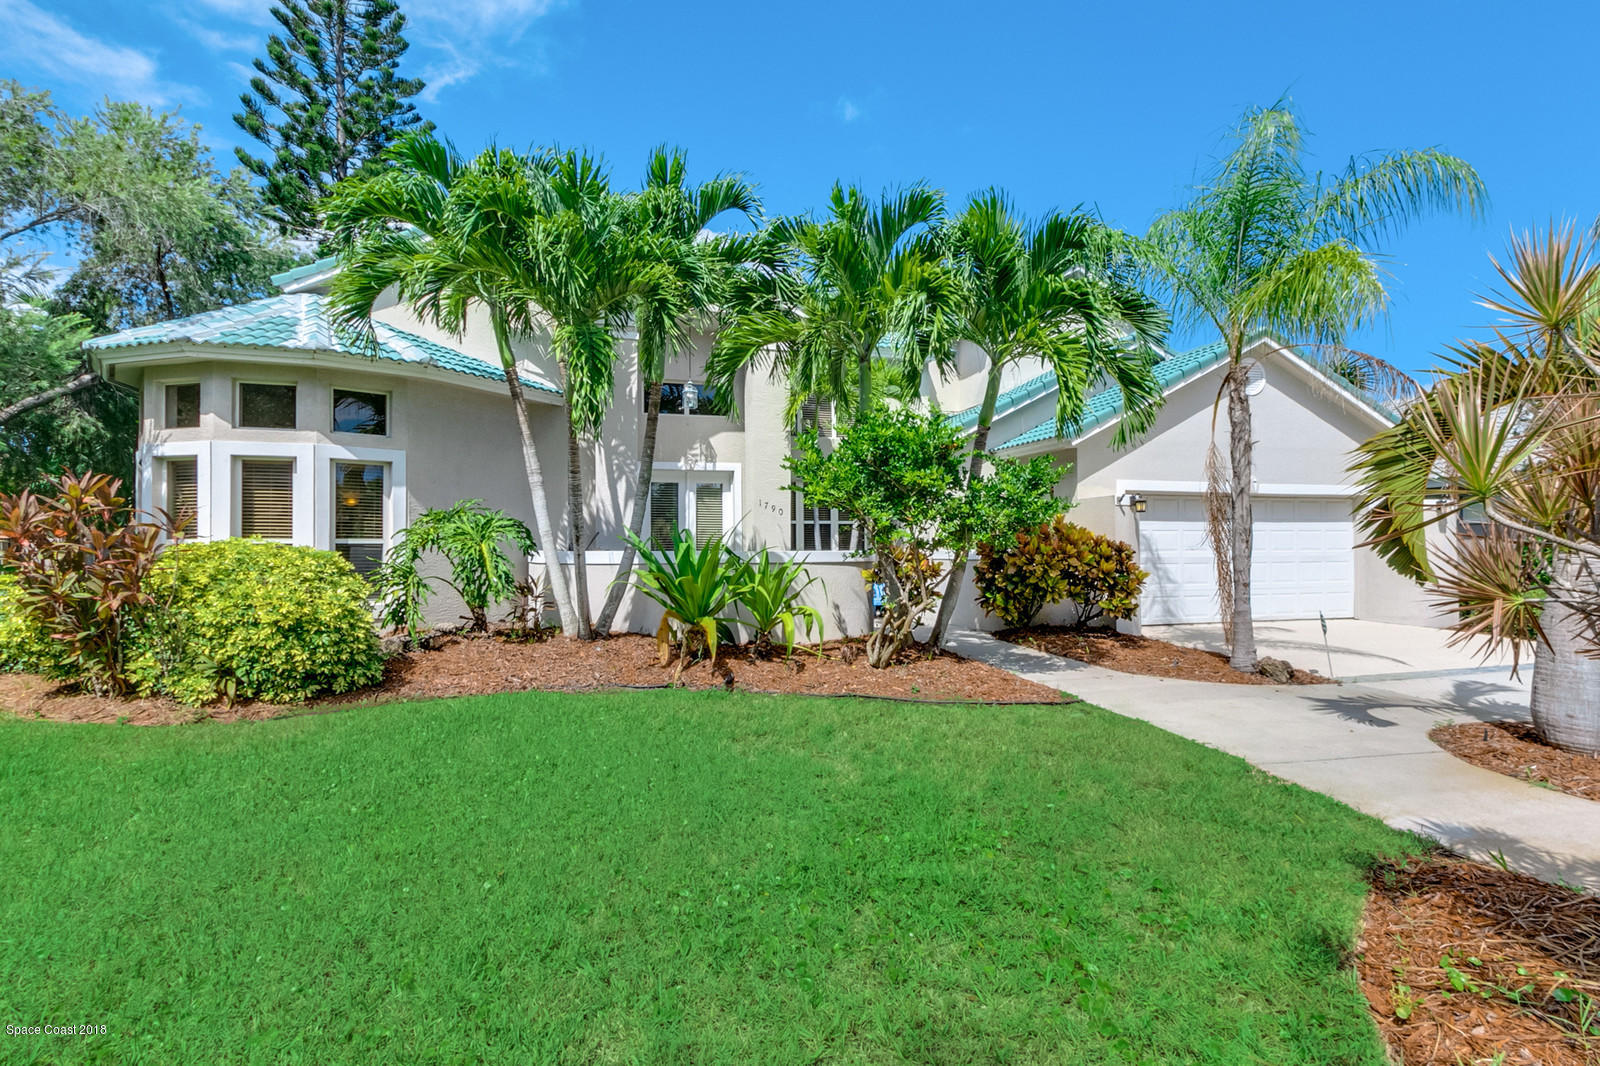 Single Family Home for Sale at 1790 Canterbury 1790 Canterbury Indialantic, Florida 32903 United States